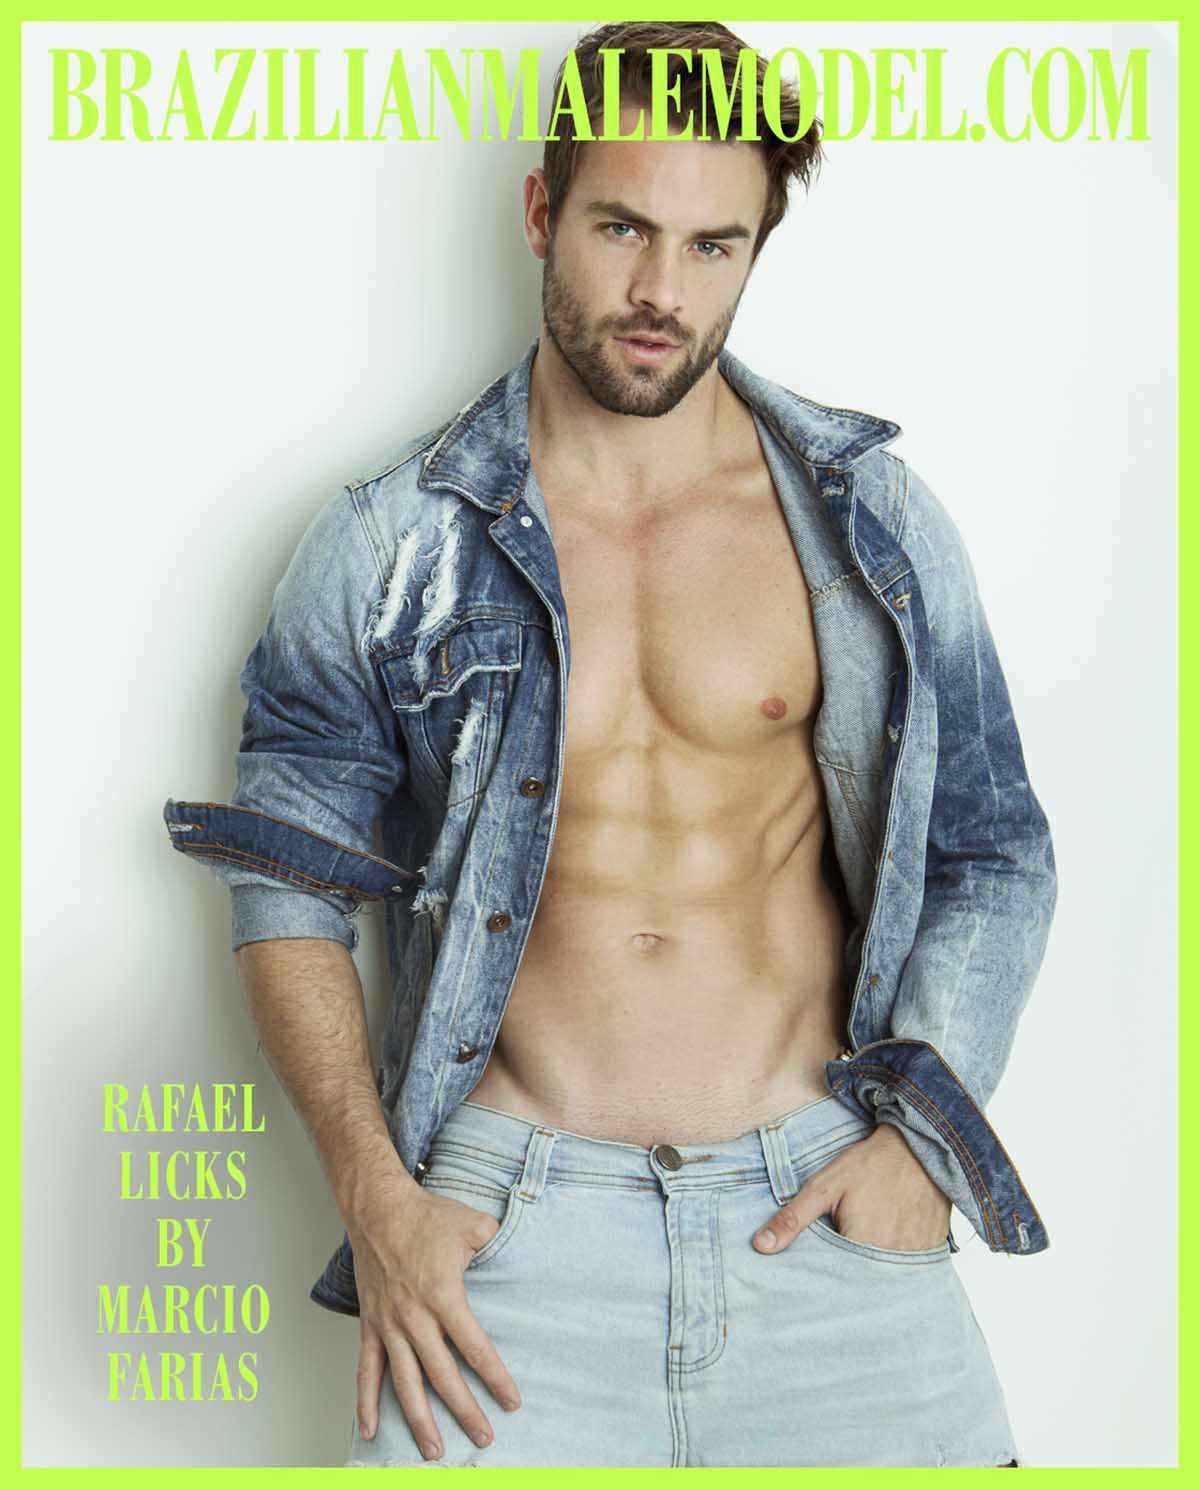 Rafael Licks by Marcio Farias